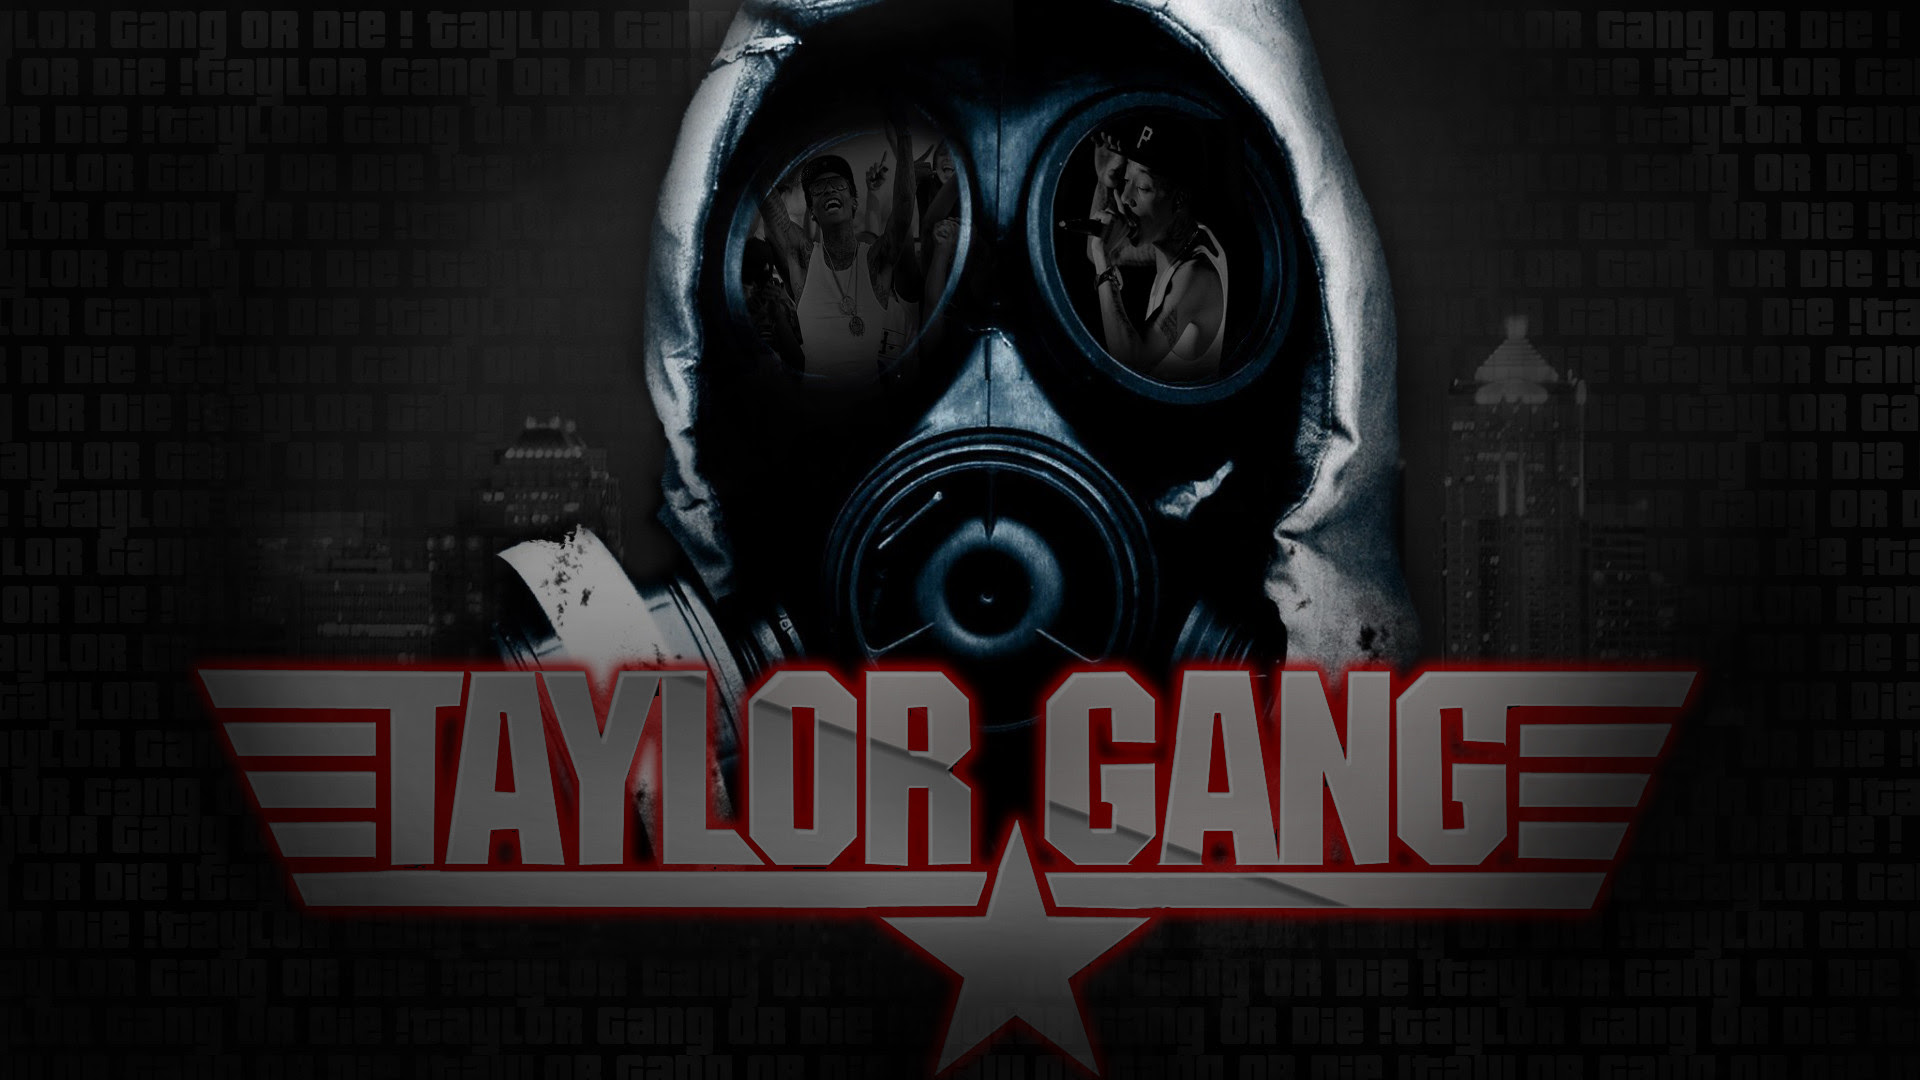 Wiz Khalifa Taylor Gang Wallpaper (71  images)